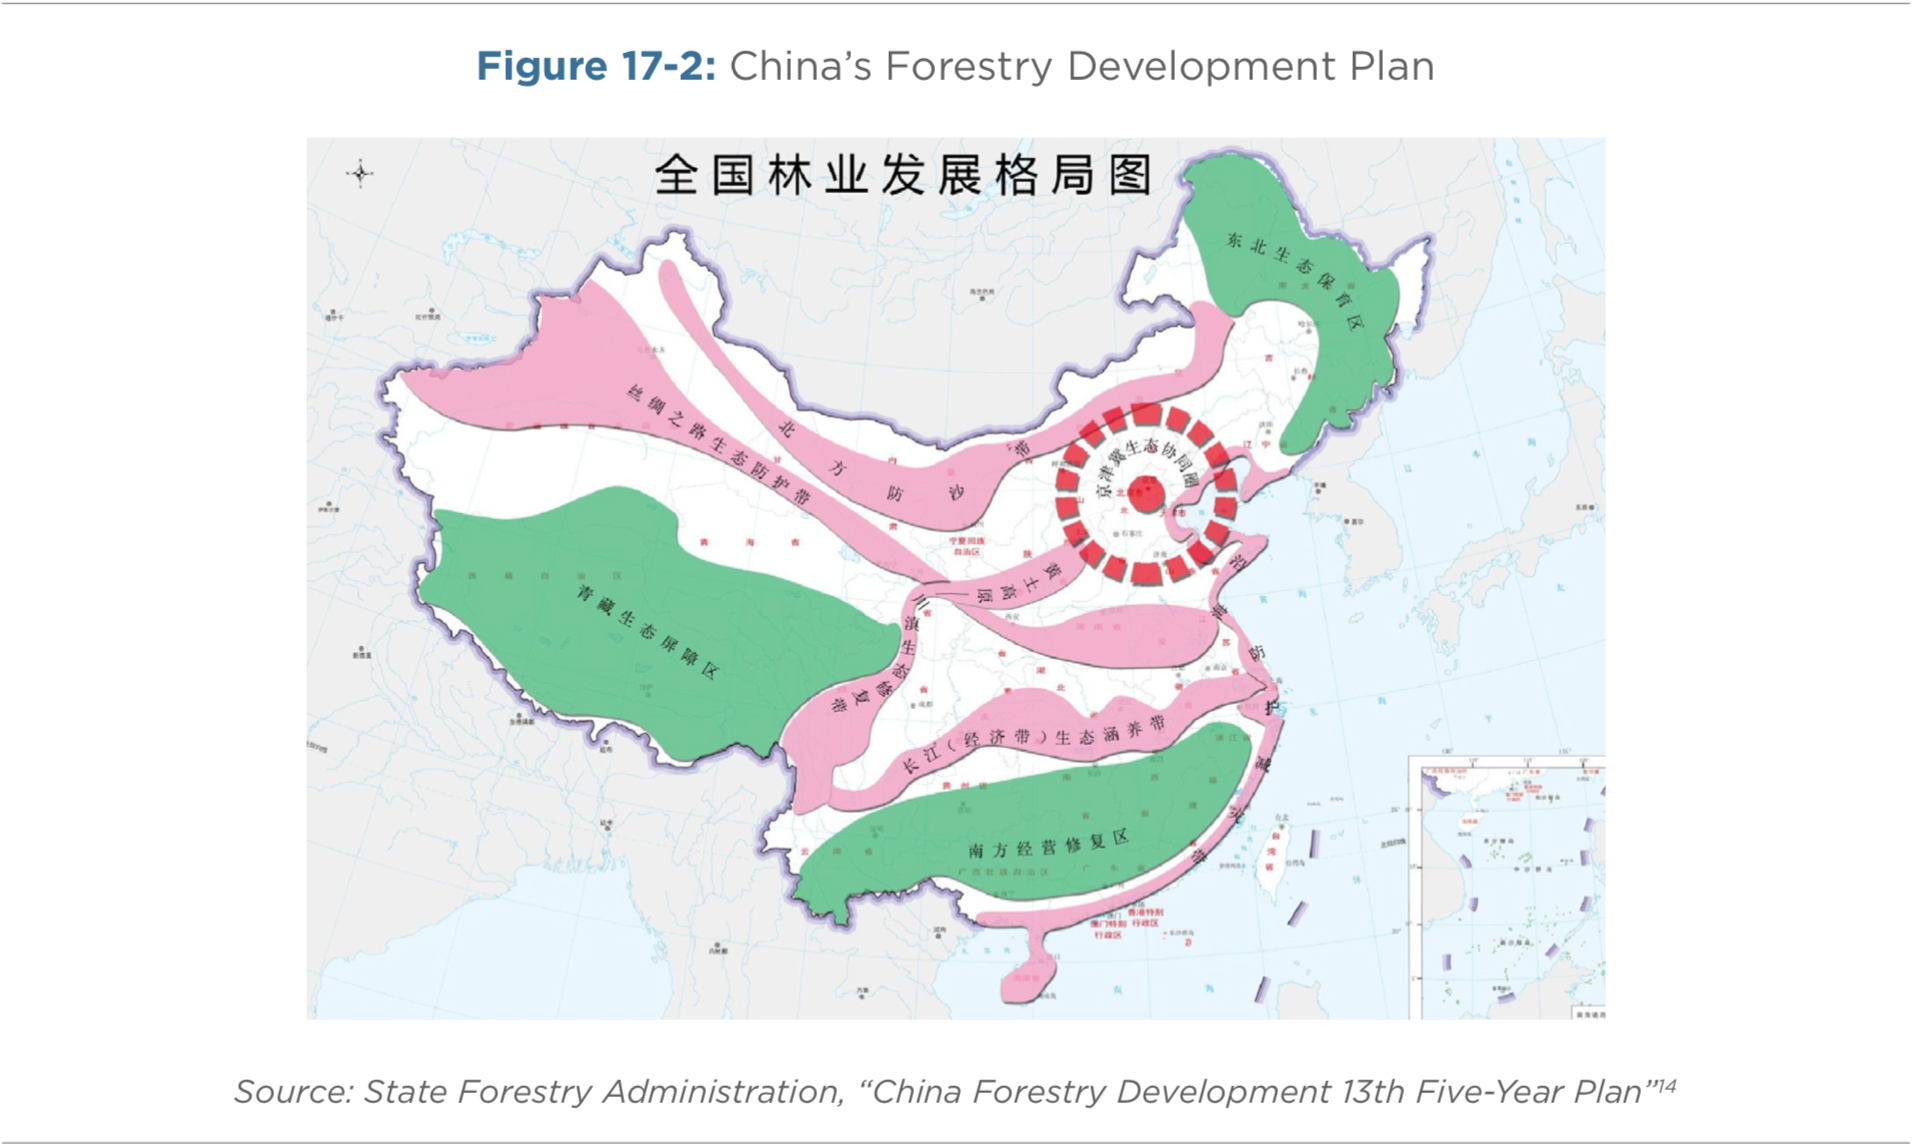 Figure 17-2: China's Forestry Development Plan